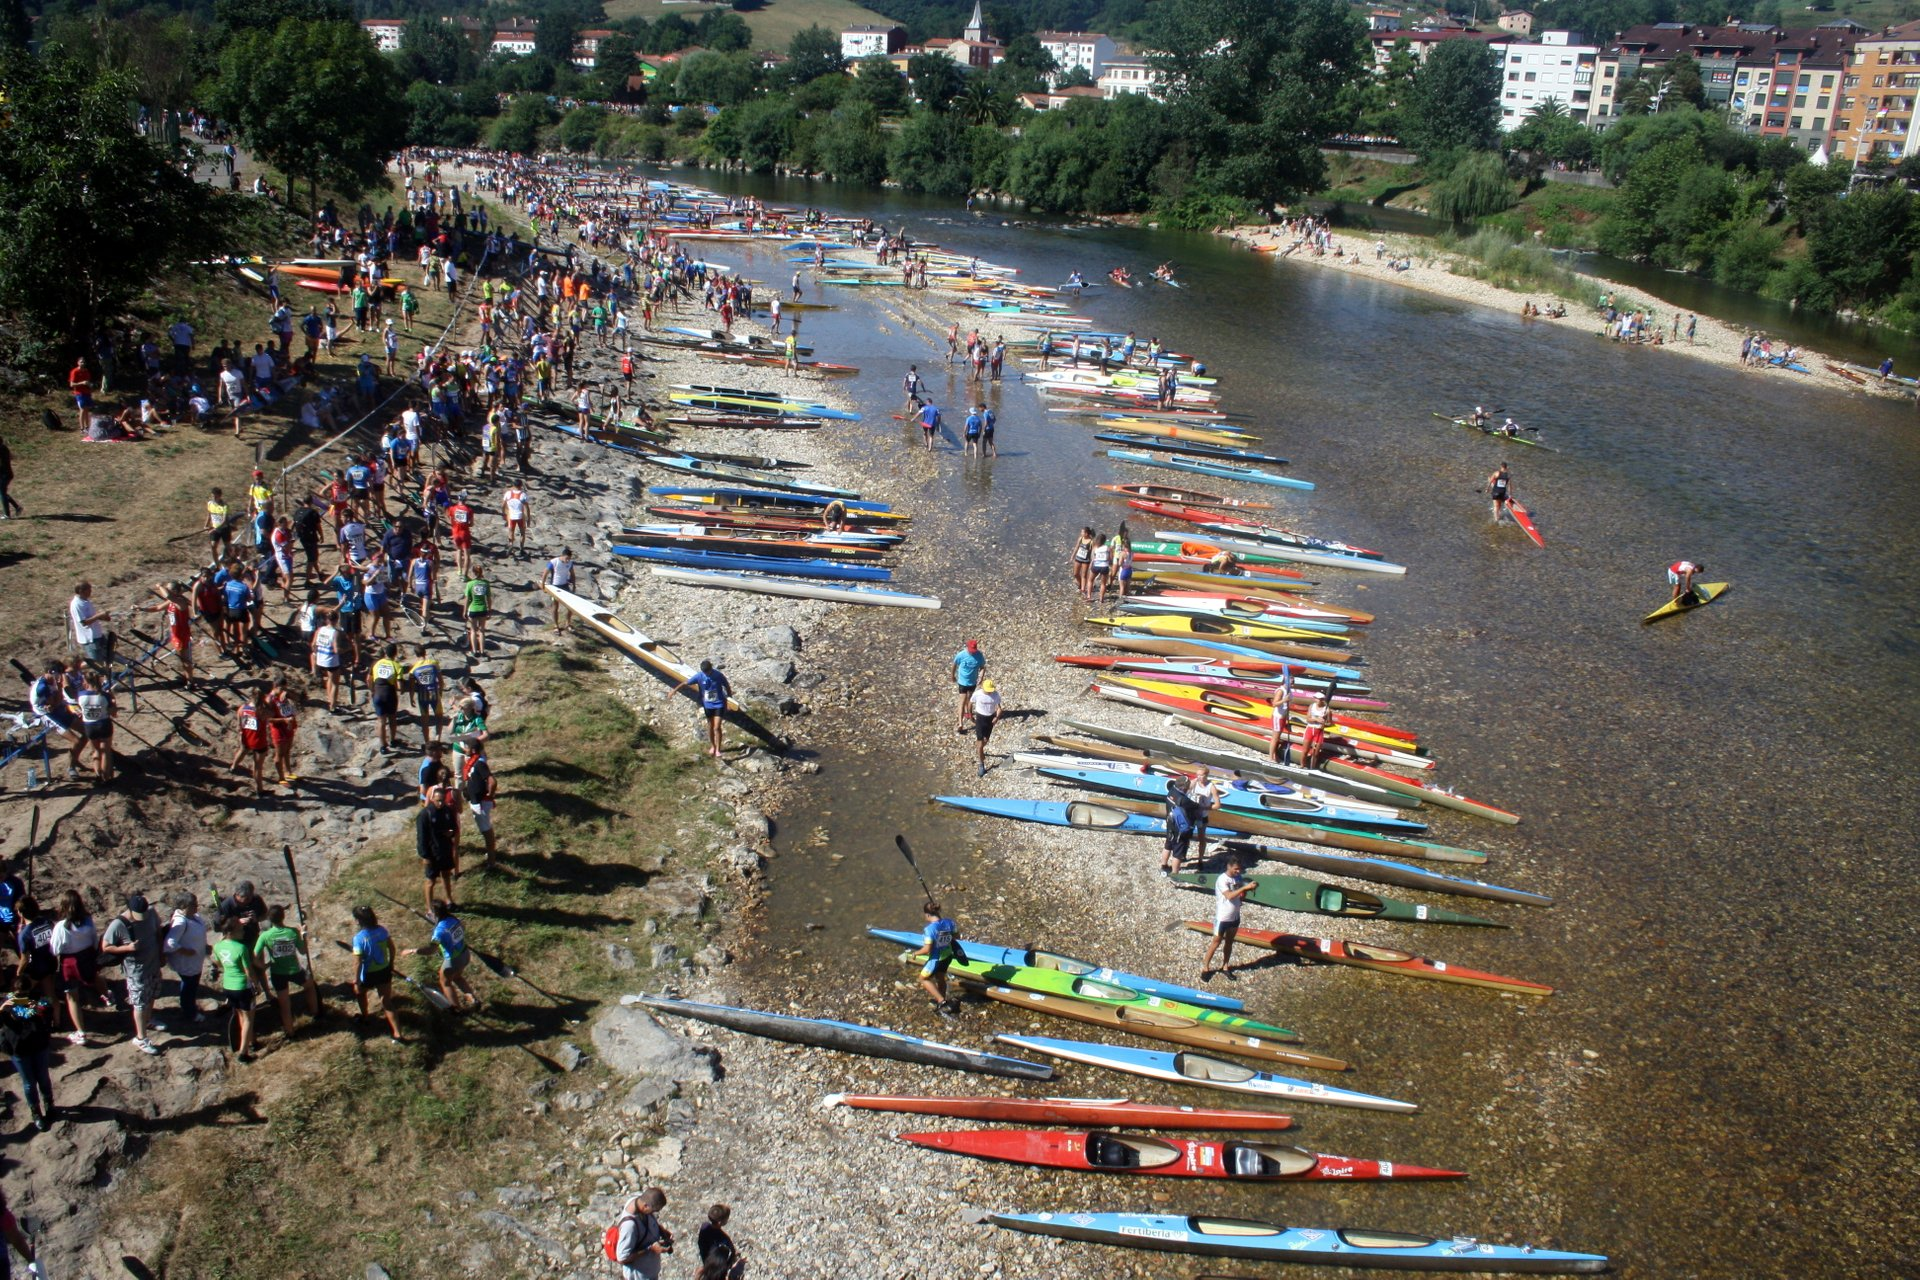 International Descent of River Sella in Spain 2020 - Best Time